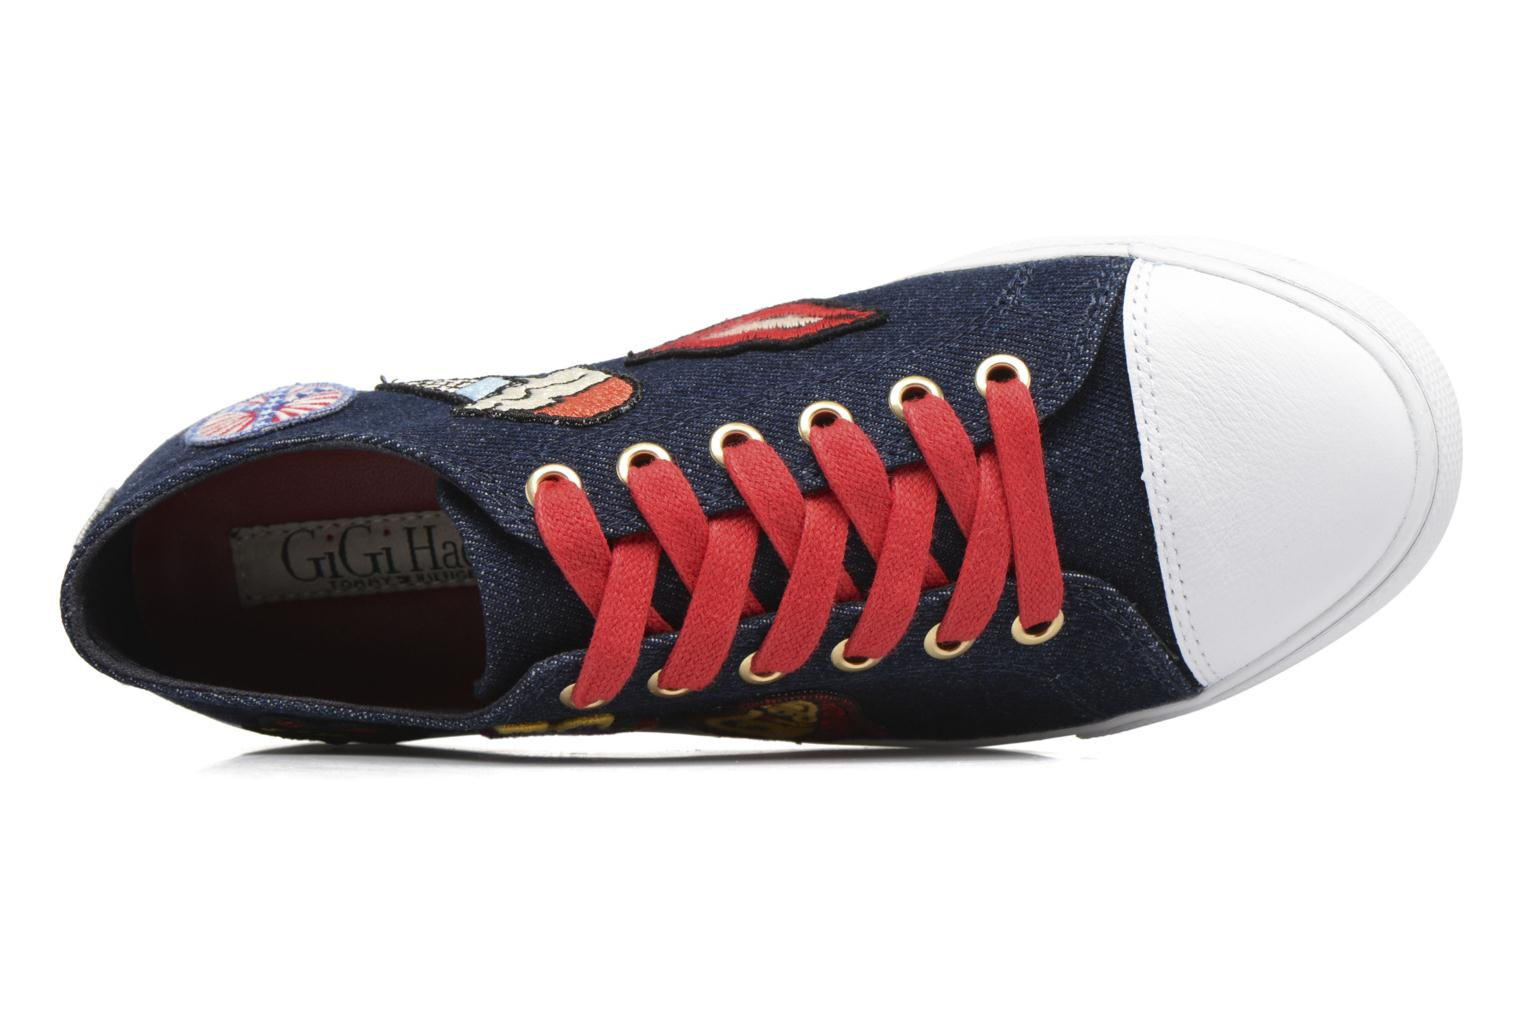 Low lace Sneaker Gigi Hadid 1C Midnight